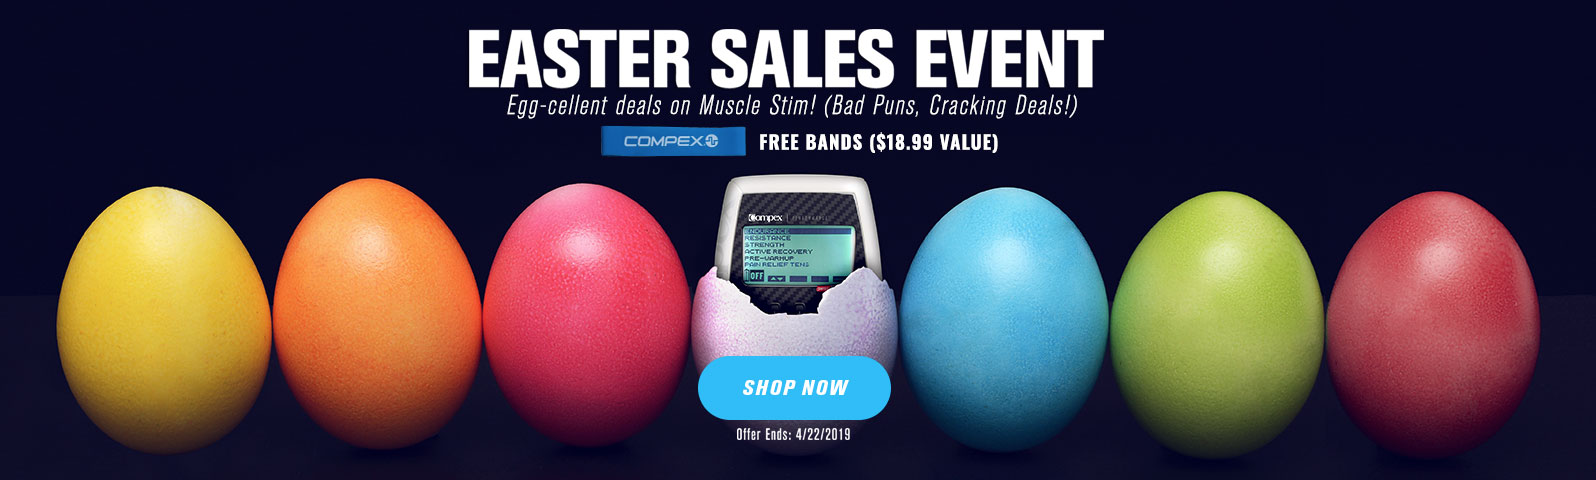 Easter Sales Event